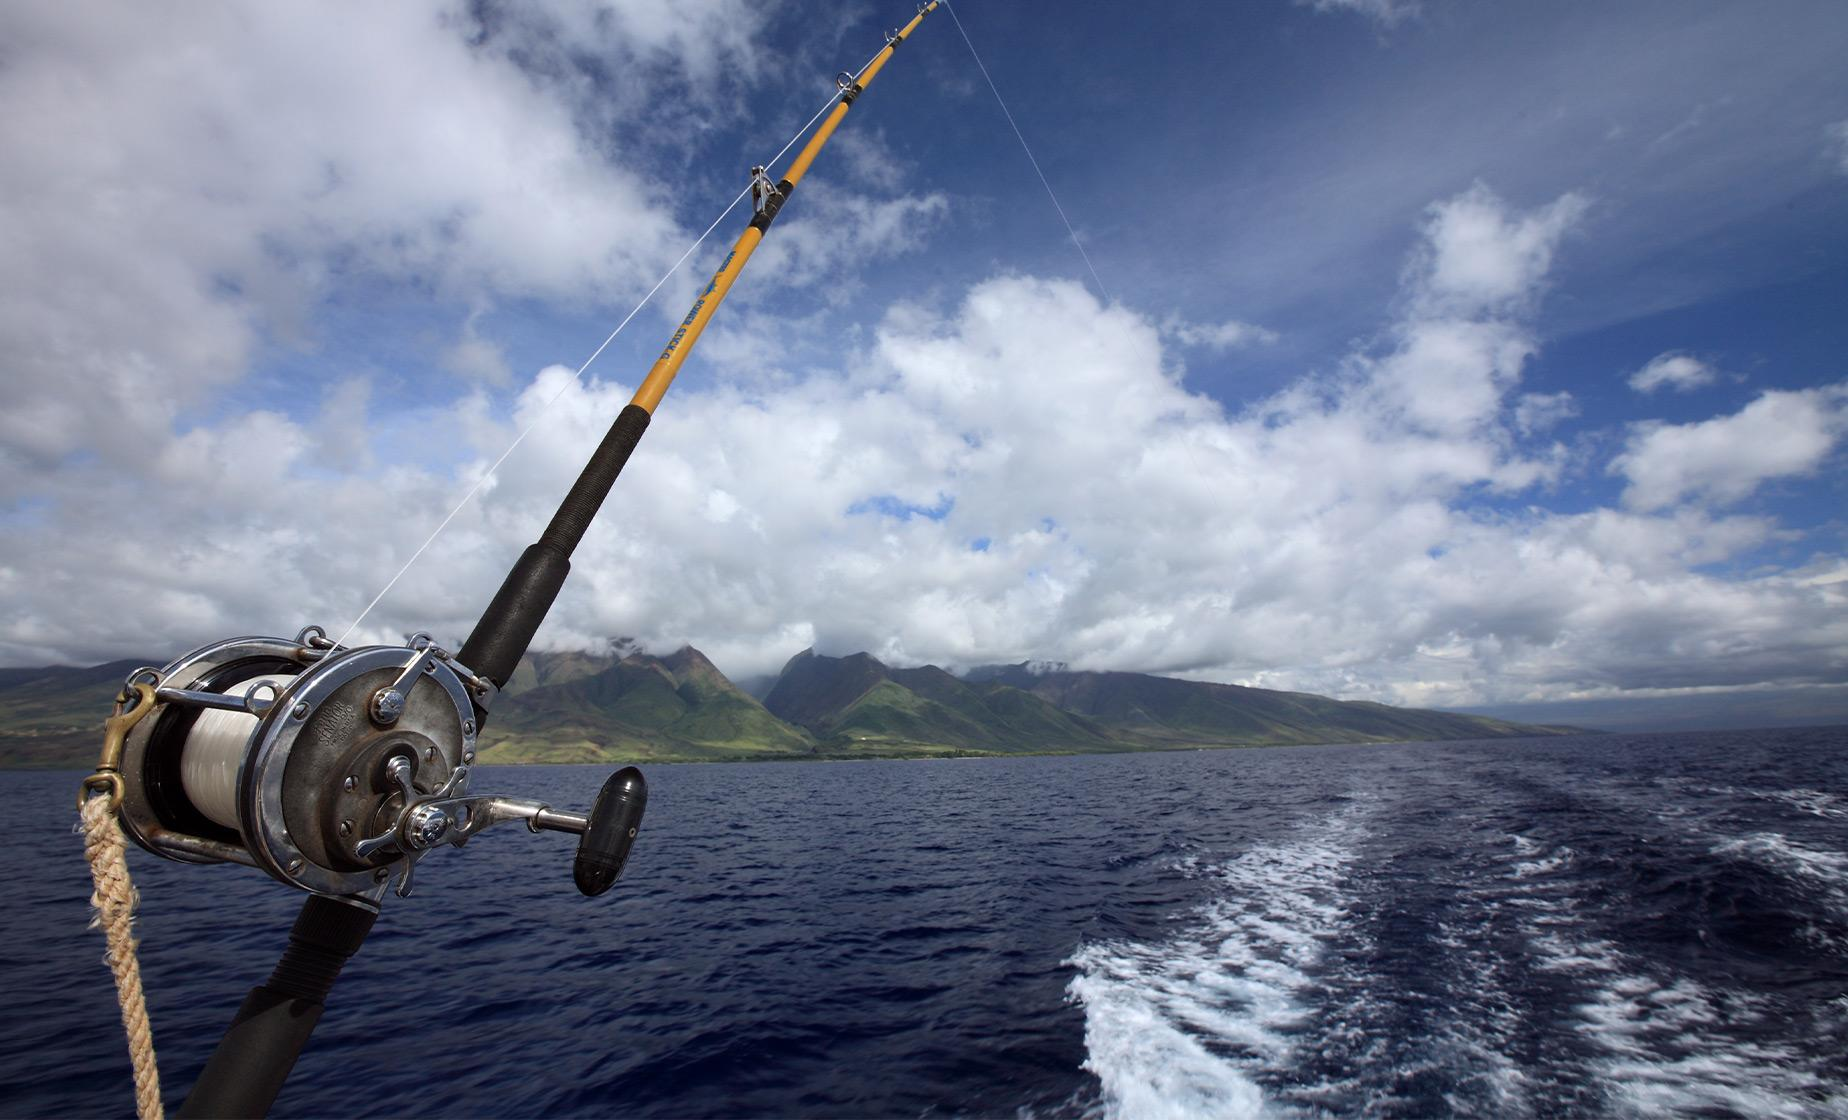 Half Day Sportfishing Tour in Kona (Kailua)